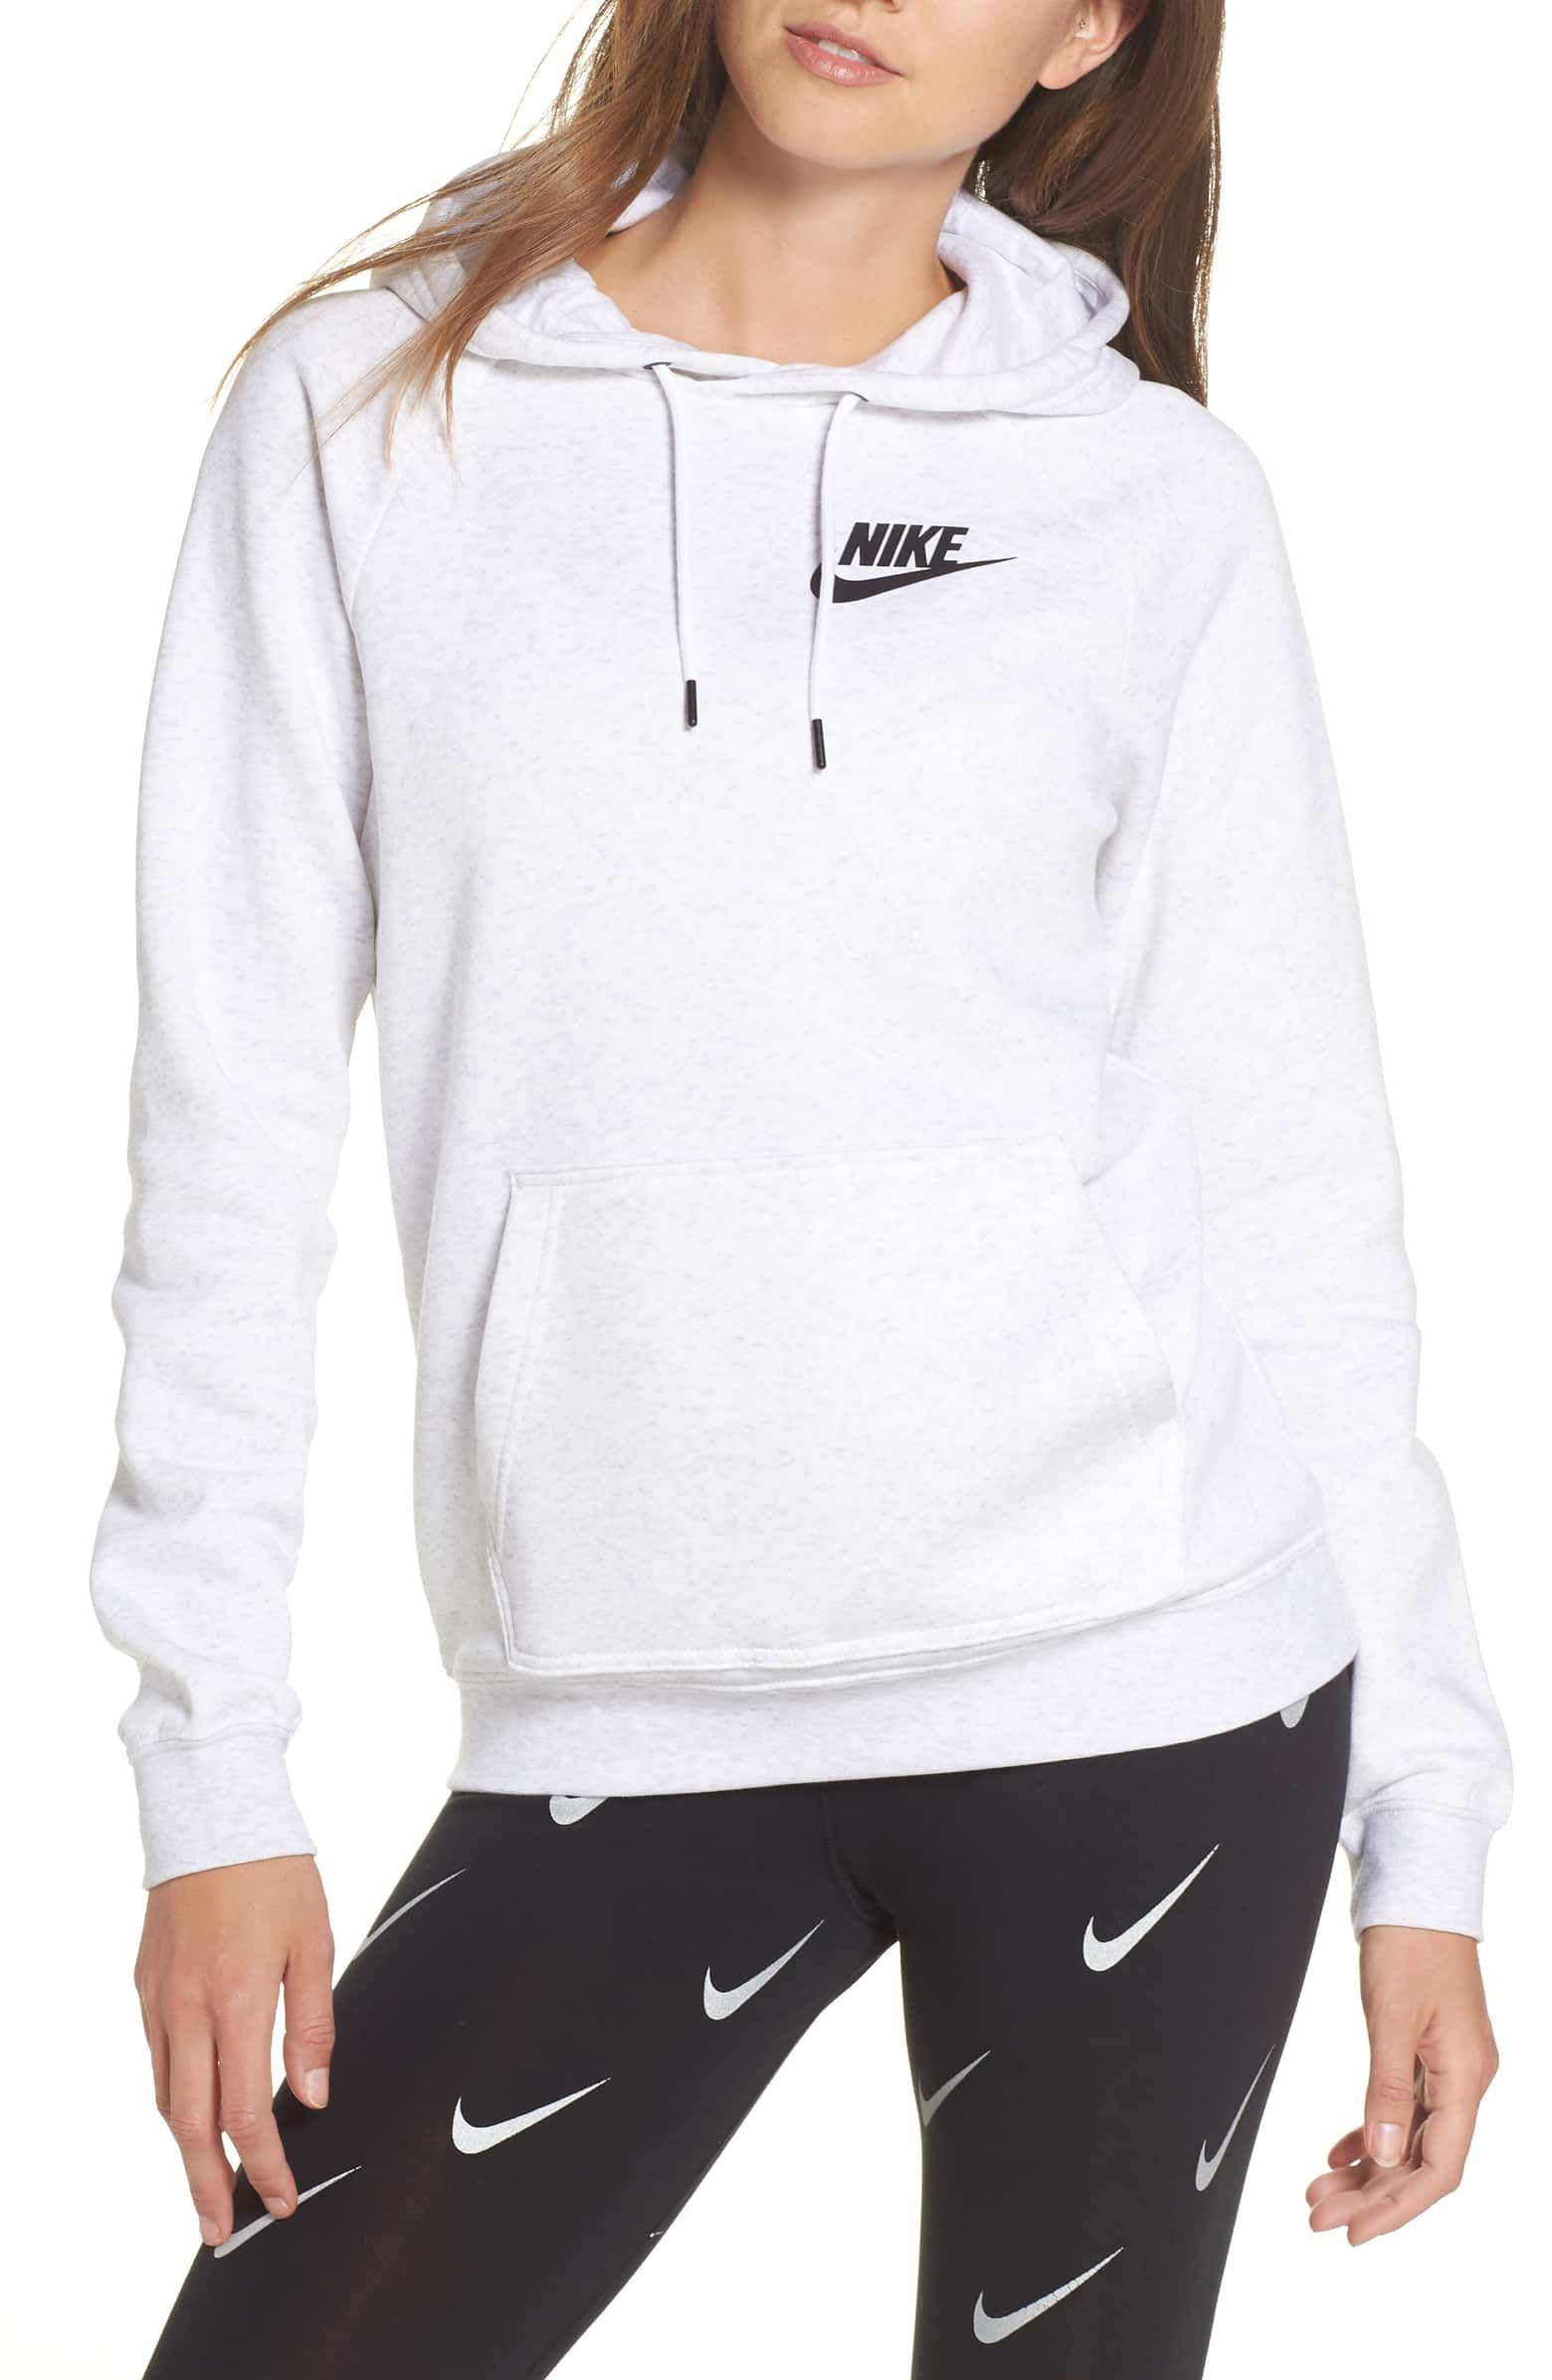 Nike Sportswear Rally Women's Hoodie | Nike hoodies for